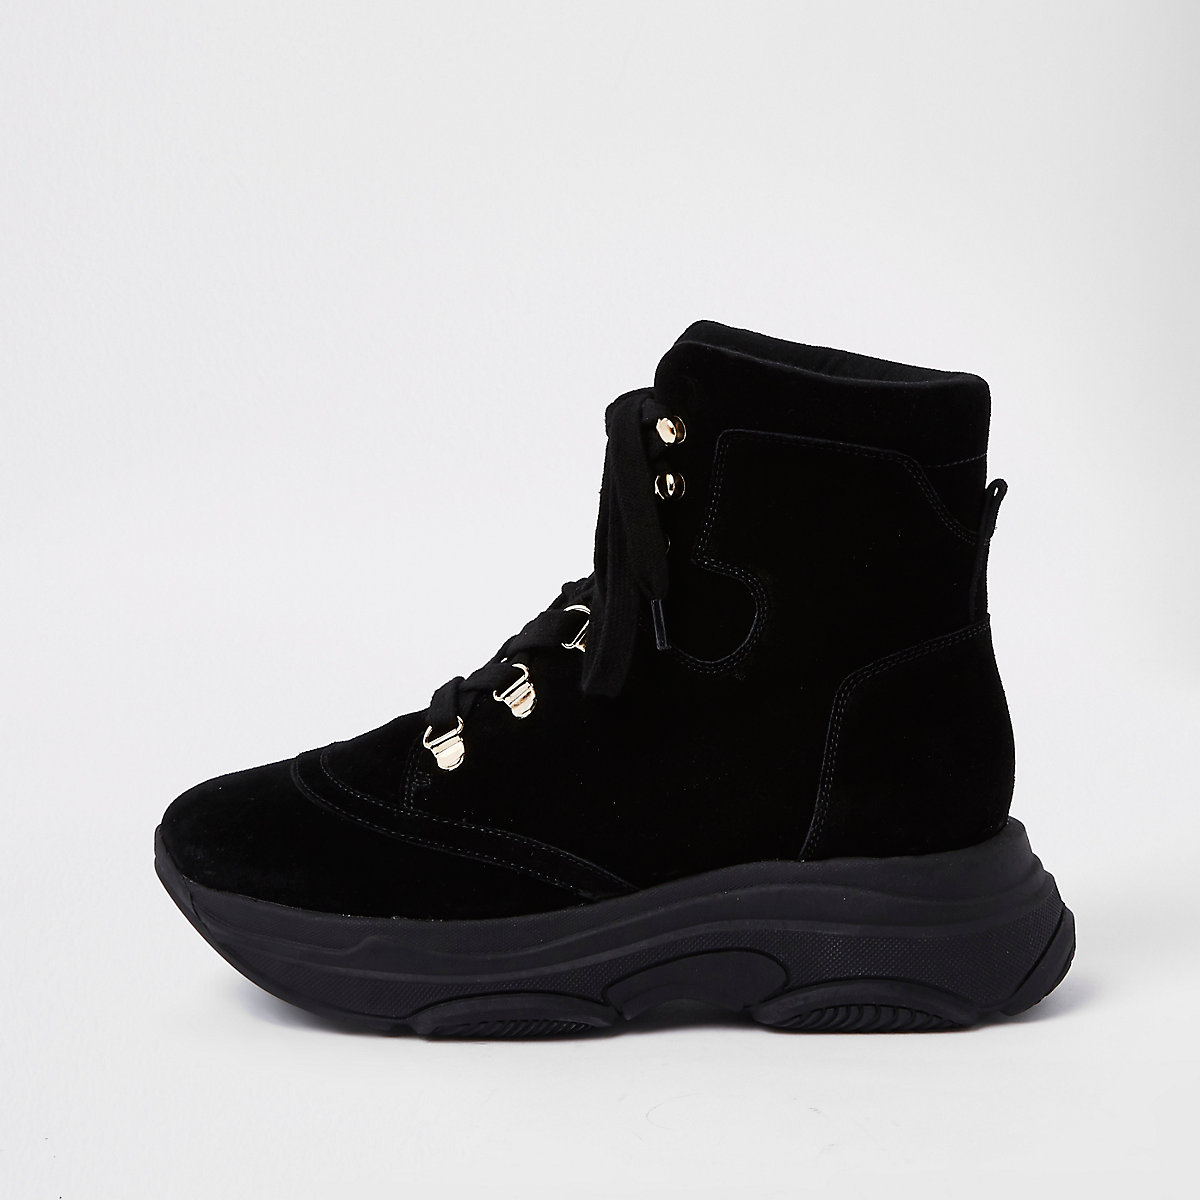 Black lace-up runner sole boots